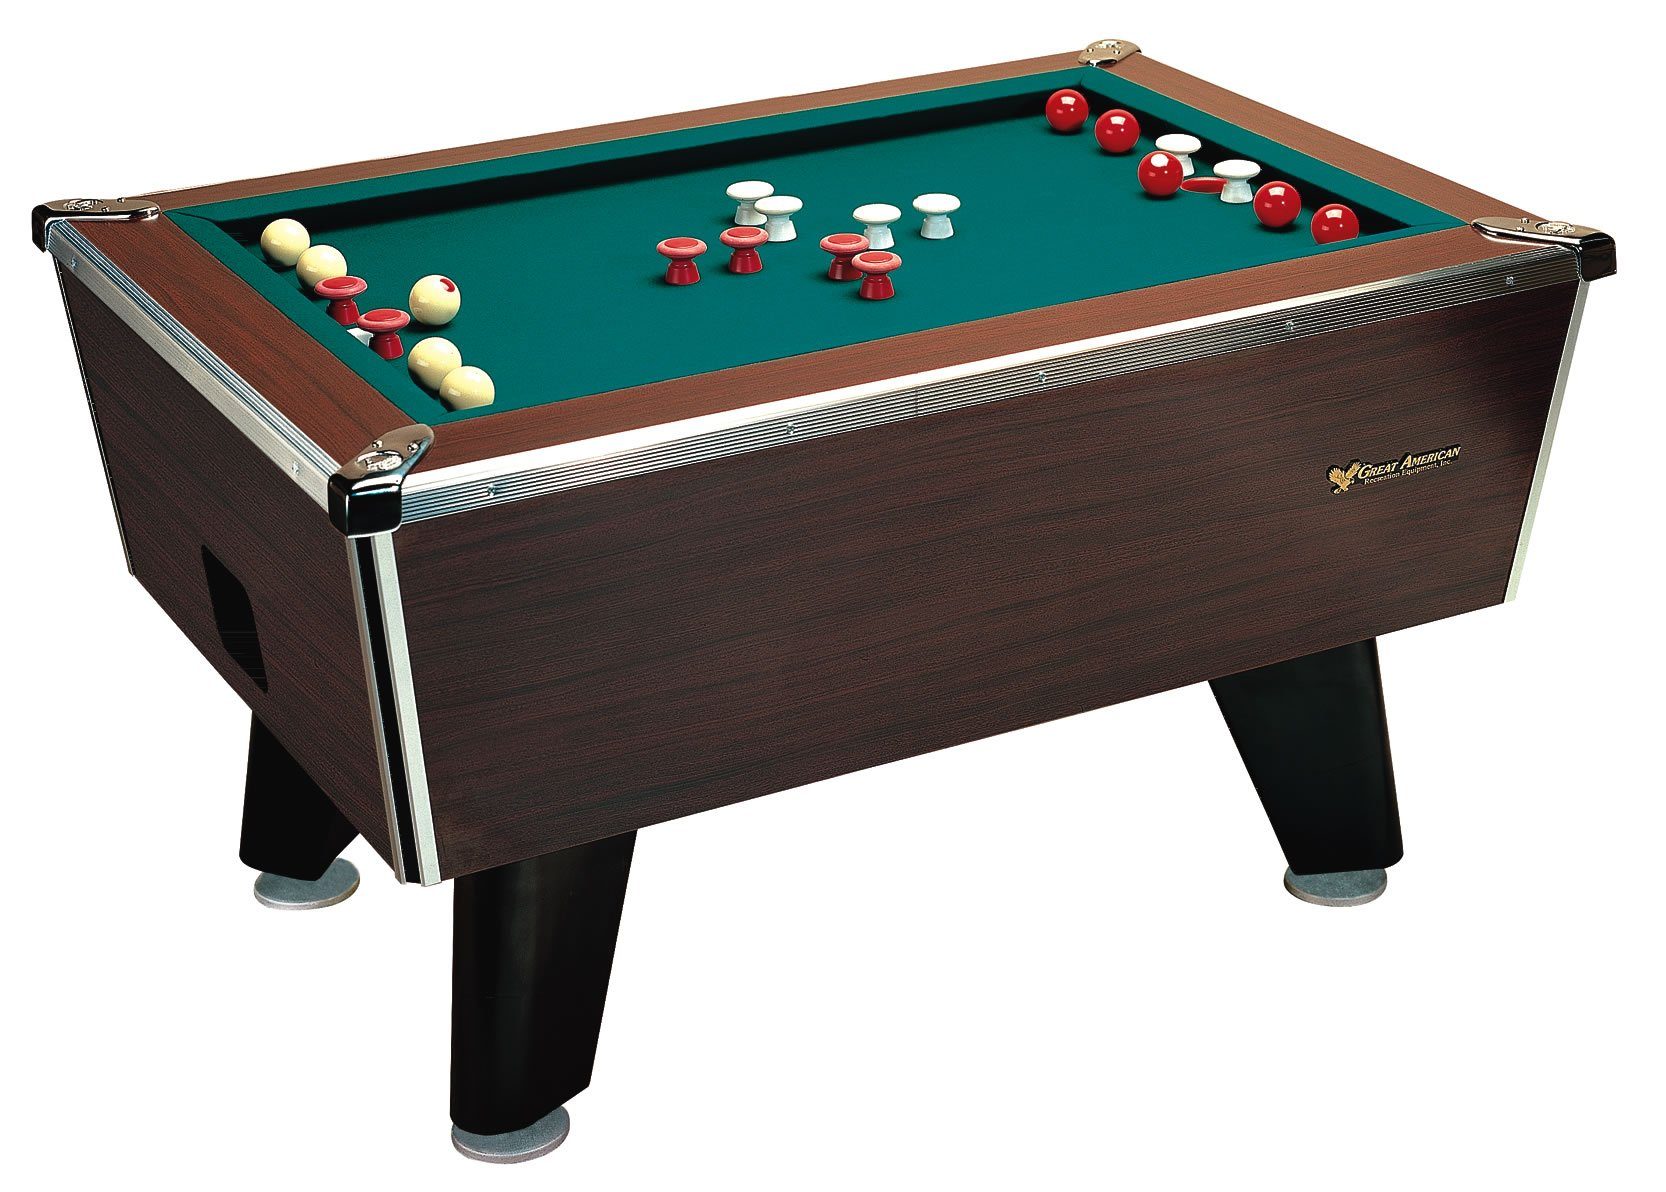 Sell Your Bumper Pool Table For The Most Cash At We Buy Pinball - How much is my pool table worth